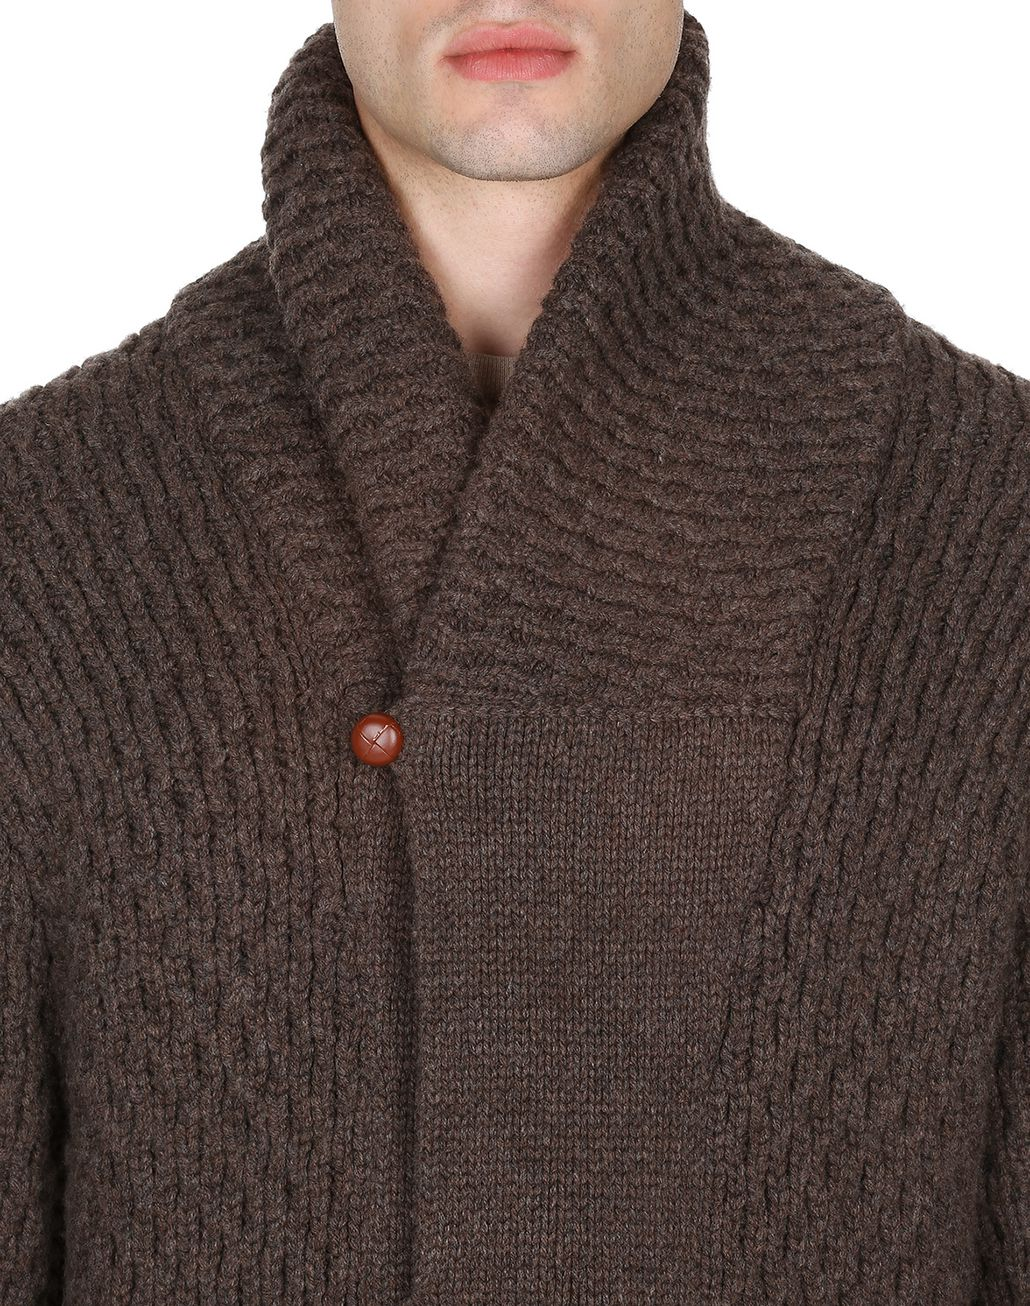 BRIONI Brown Knitwear Jacket Knitwear Man e